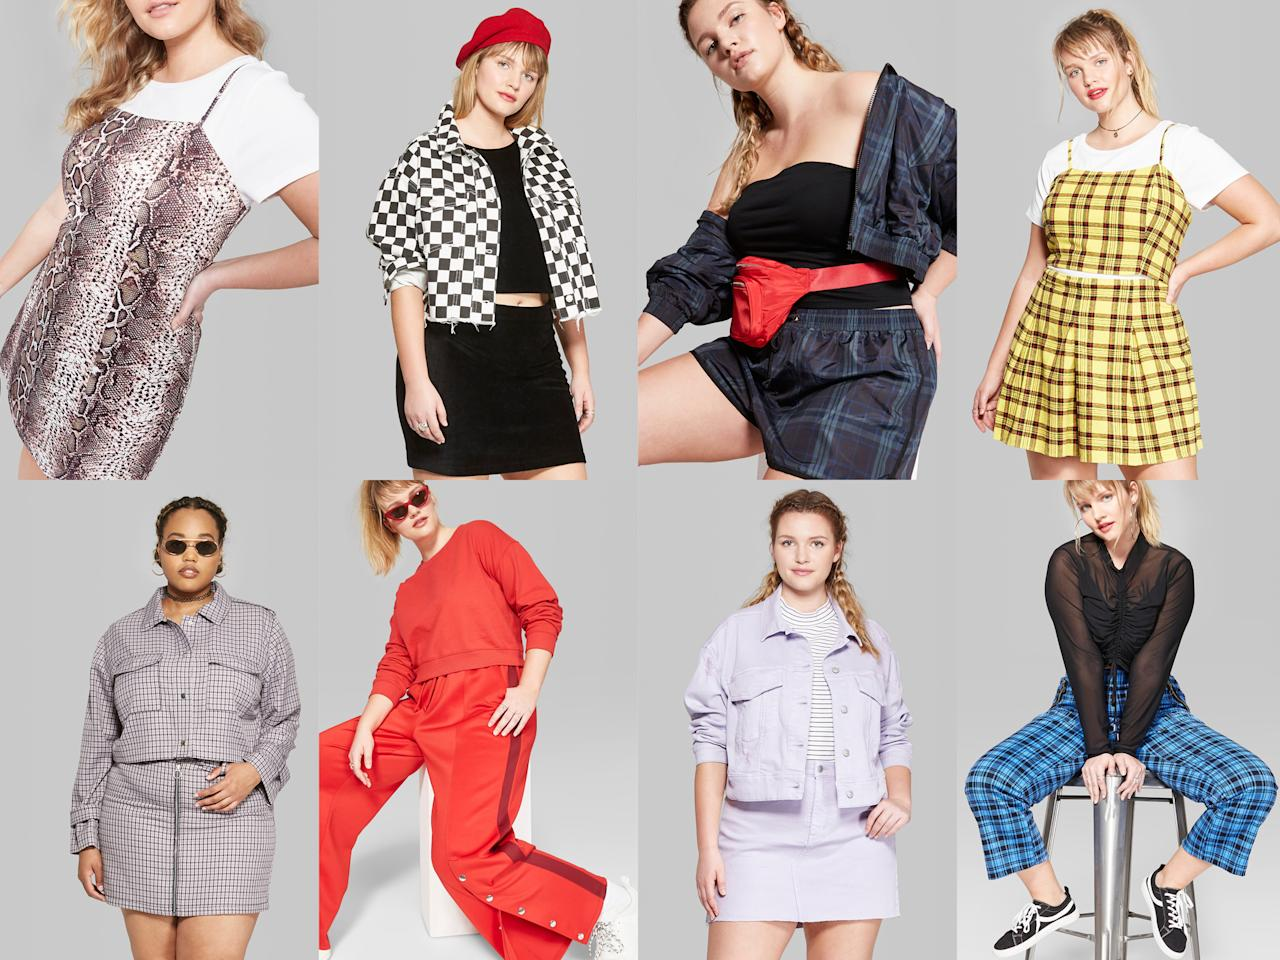 <p>Target's new Wild Fable line offers inclusive sizing, affordable prices, and on-trend fall styles. (Photo: Courtesy of Target) </p>